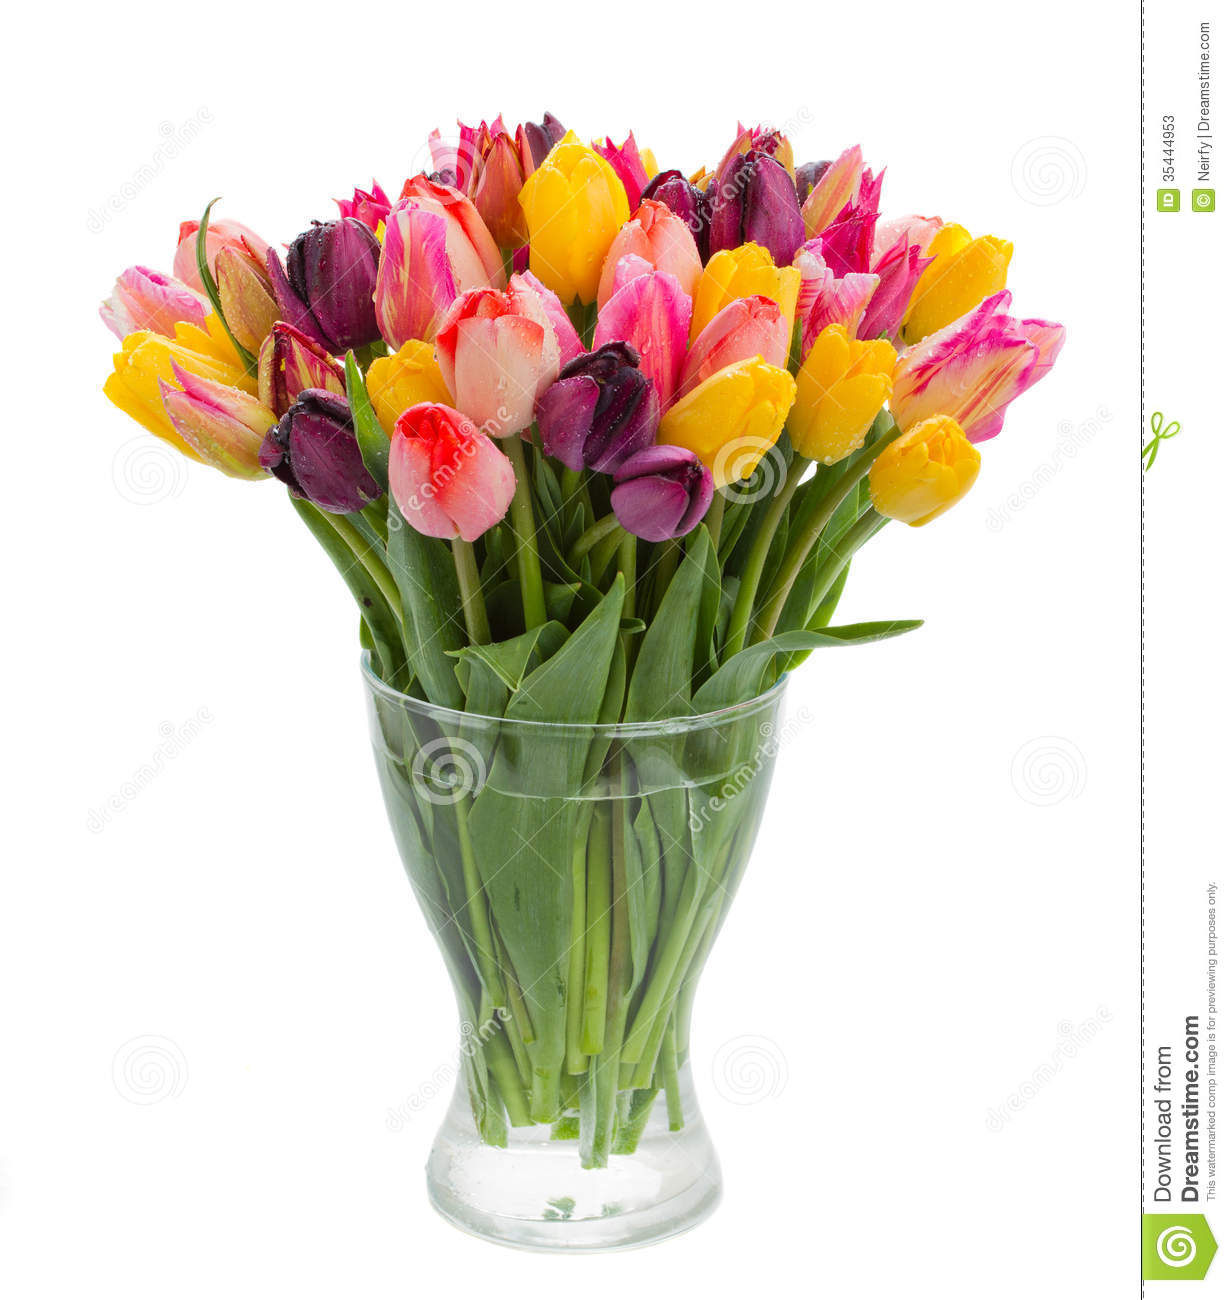 Vase of tulips gallery vases design picture fresh tulips in vase stock image image of flower color 35444953 fresh tulips in vase reviewsmspy reviewsmspy